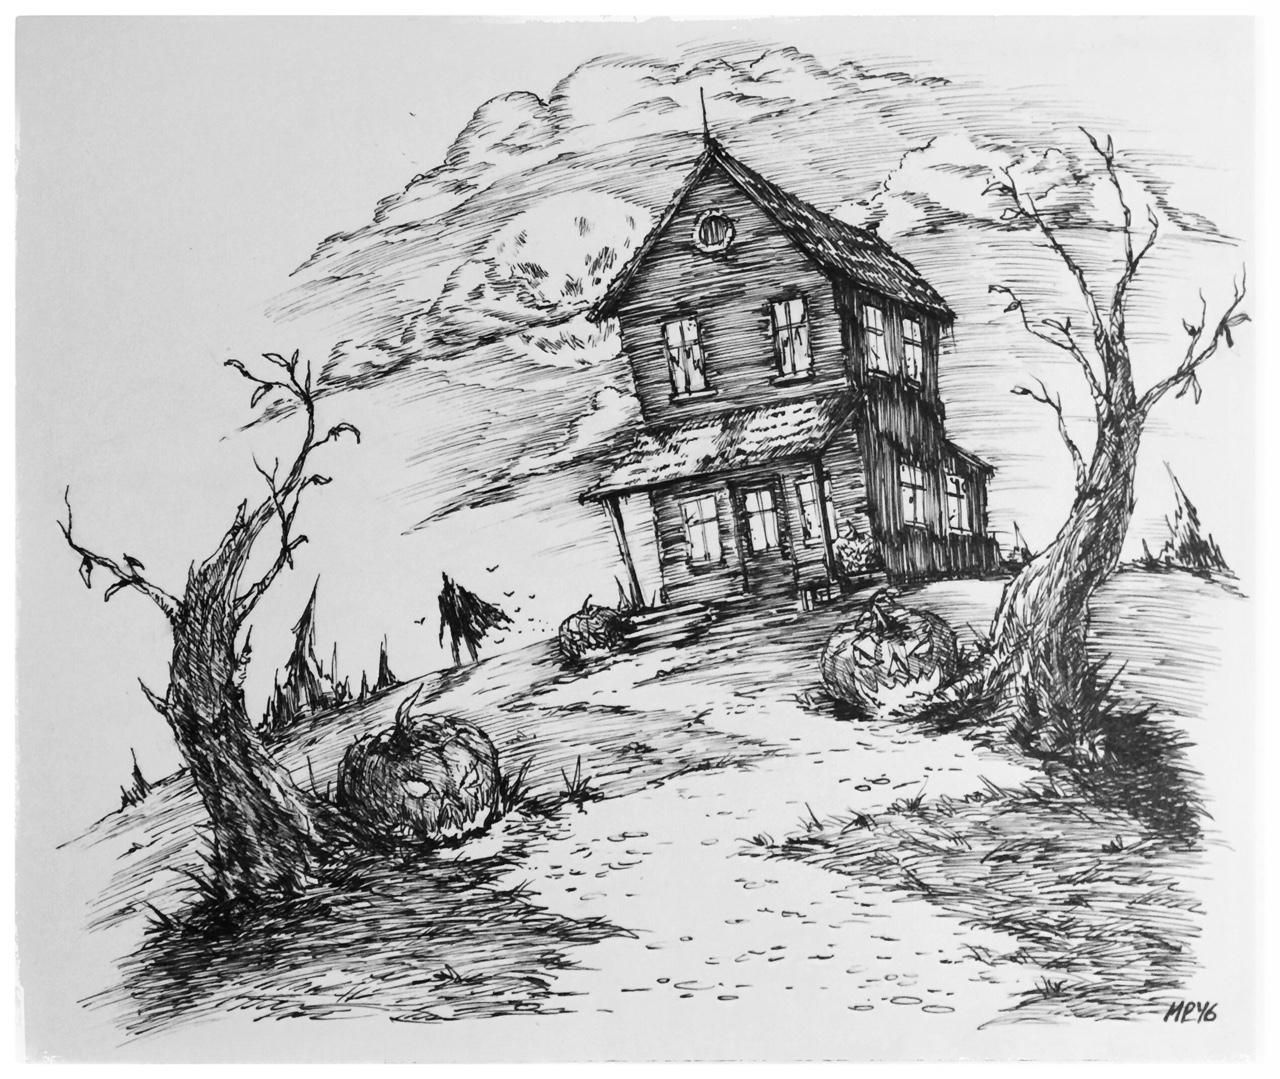 1/31 Inktober Haunted House Ink on paper 10x10